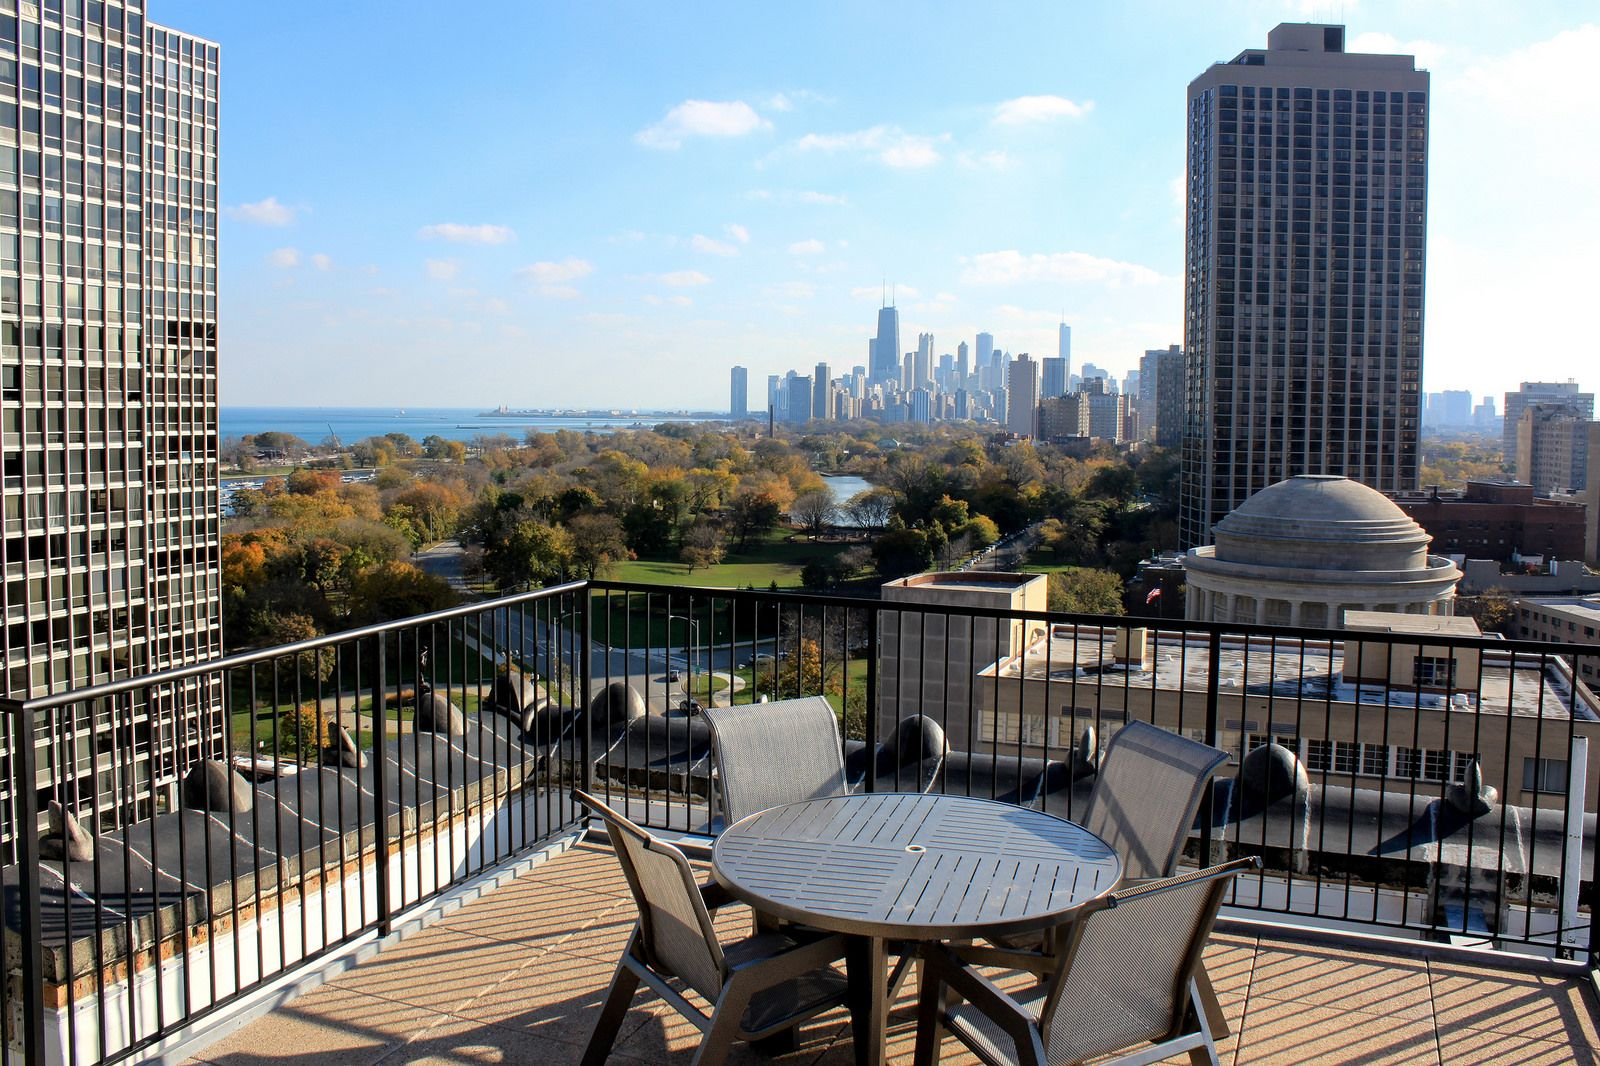 Soak Up The Sun On The Rooftop Of 2850 N Sheridan You Ll Have Breathtaking Views Of The Chicago Skyline And Lake View Apartments Chicago Apartment Lake View